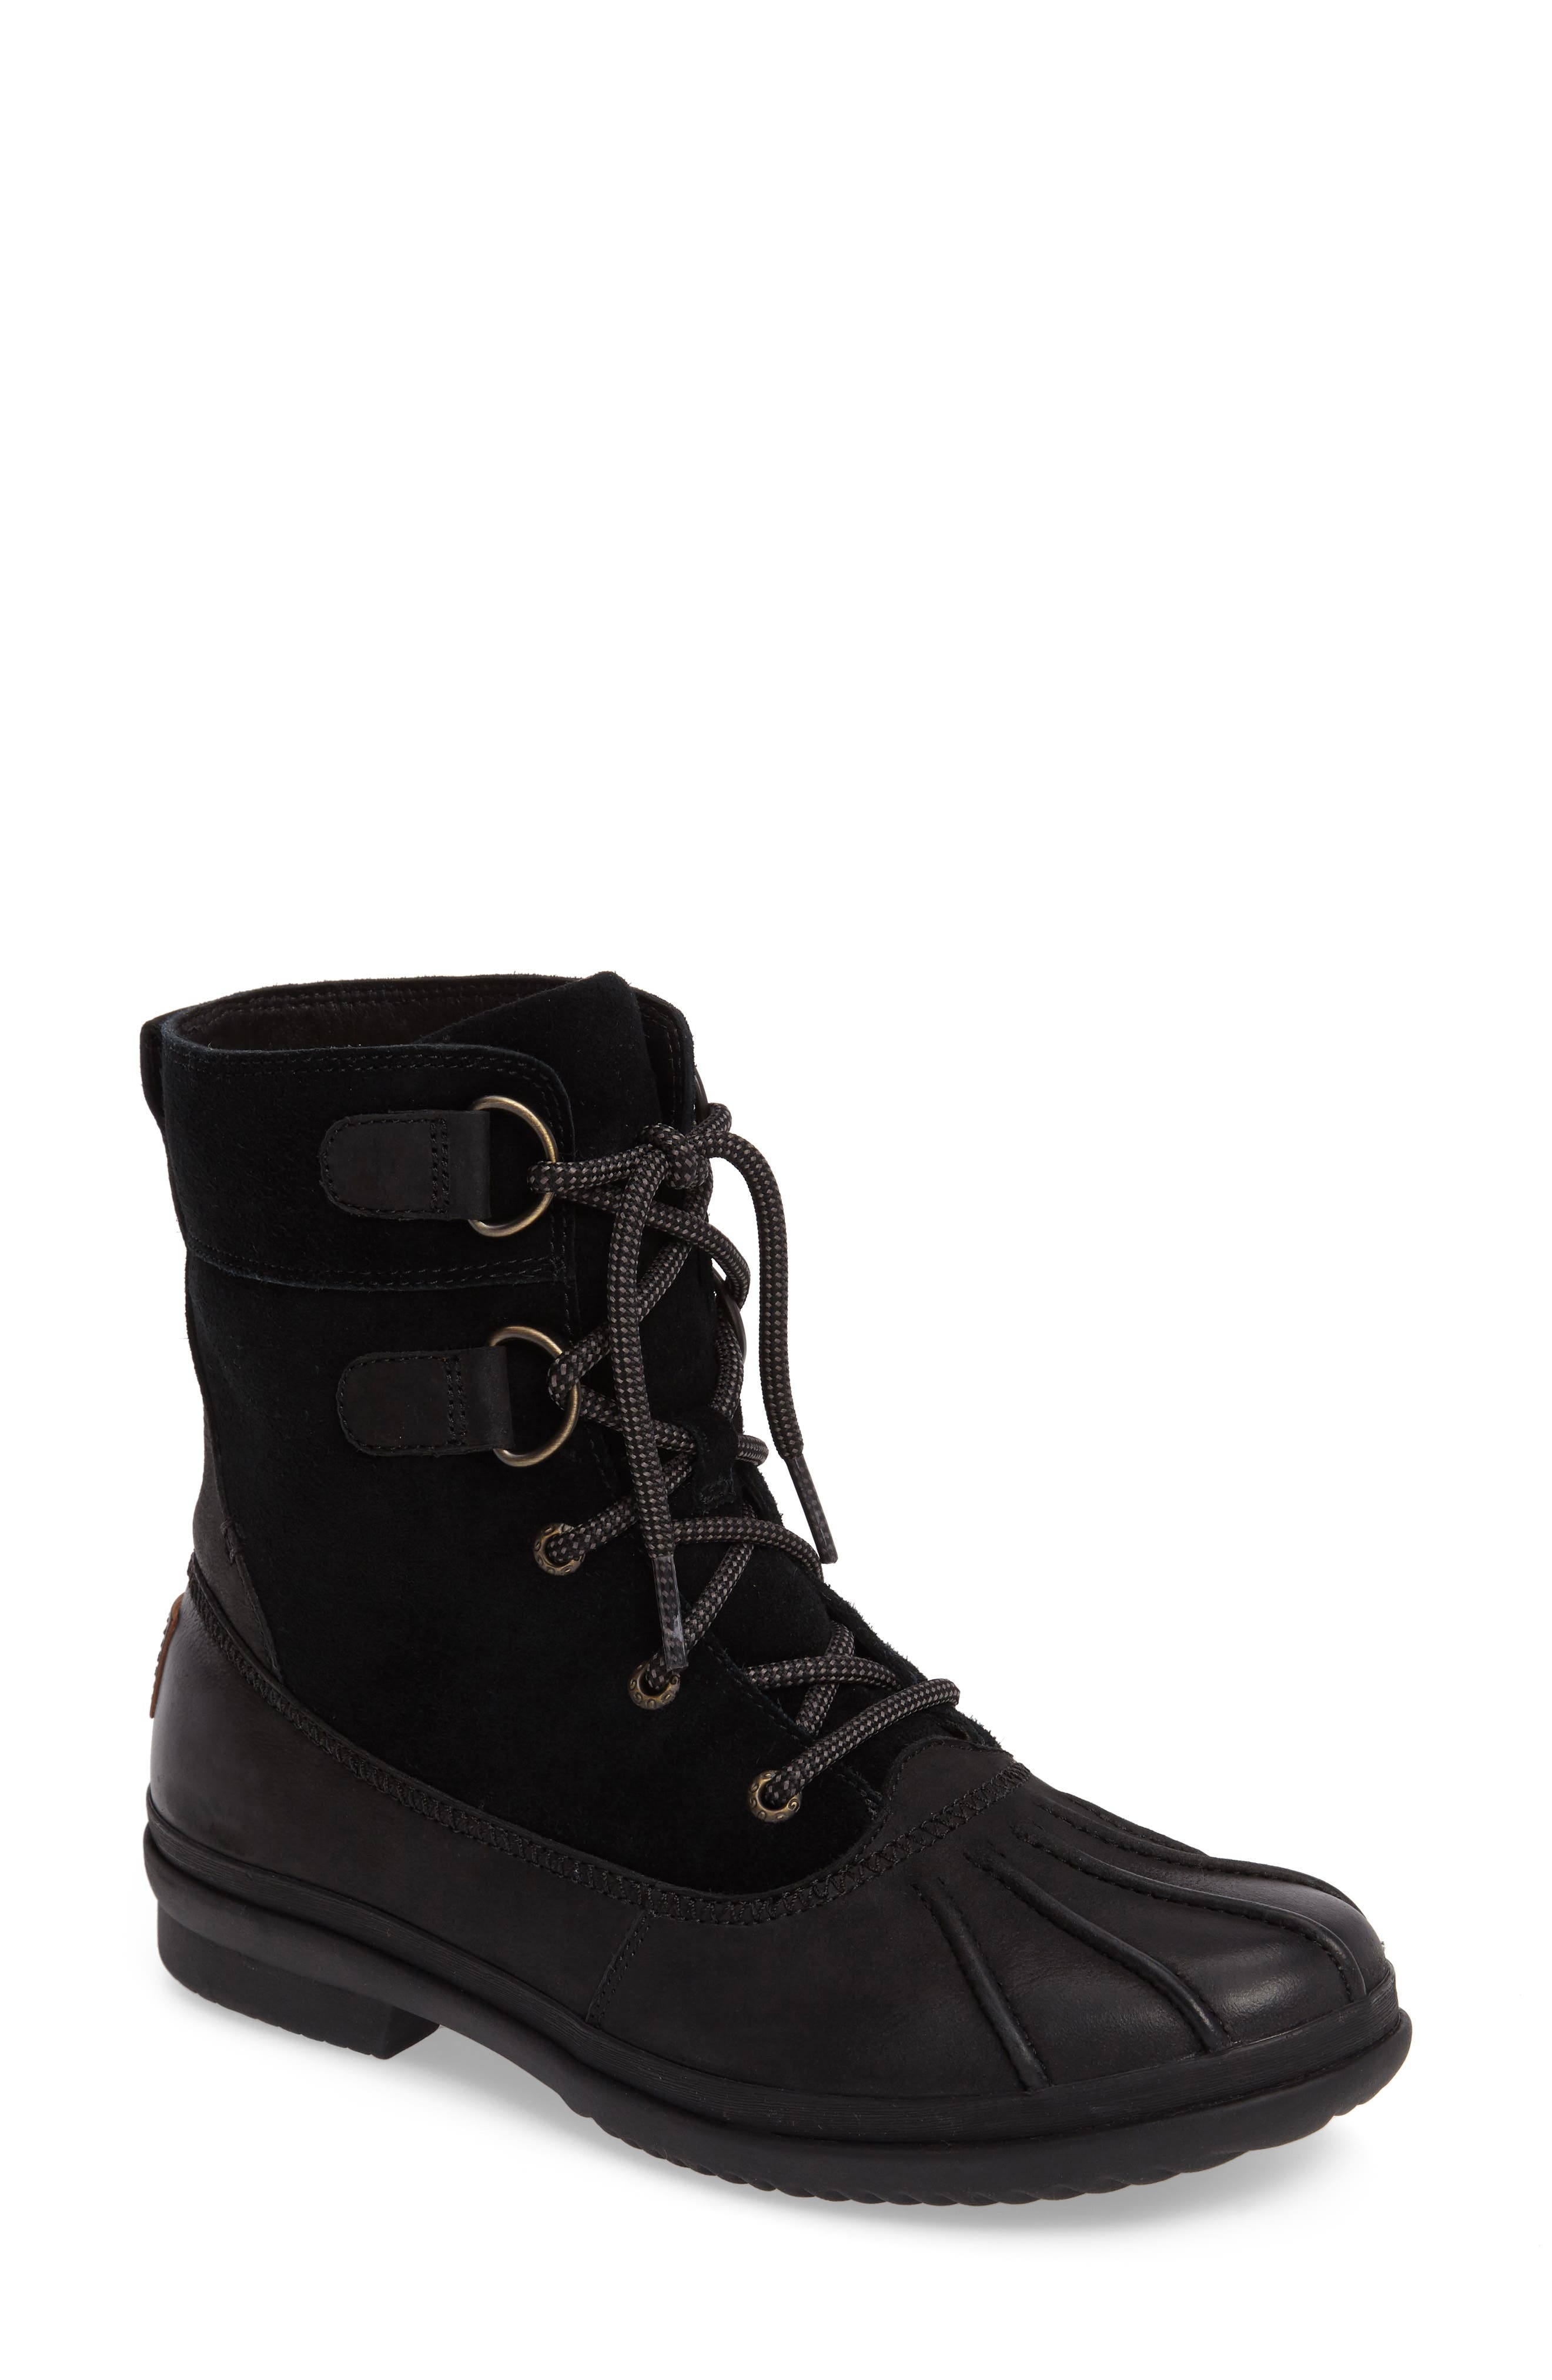 Azaria Waterproof Boot,                             Main thumbnail 1, color,                             Black Leather